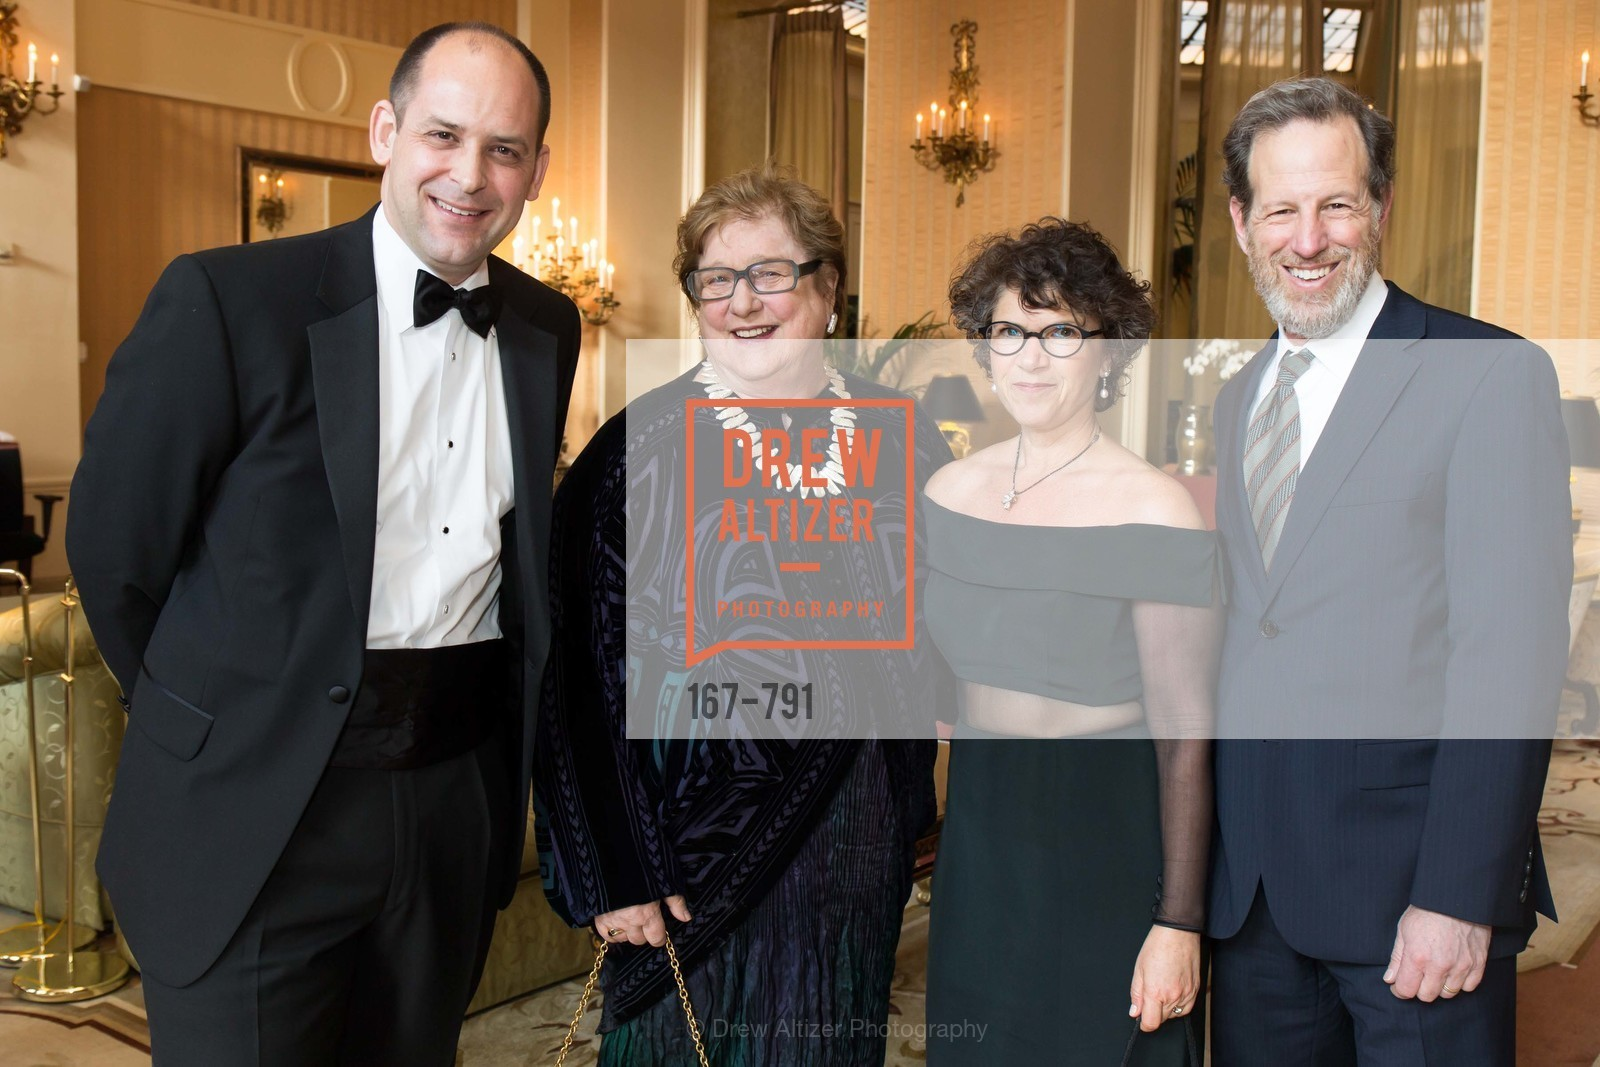 Mike Buhler, Linda Jo Fitz, Rebecca Schnier, Philip Witte, SAN FRANCISCO HERITAGE Soiree 2015, US, April 19th, 2015